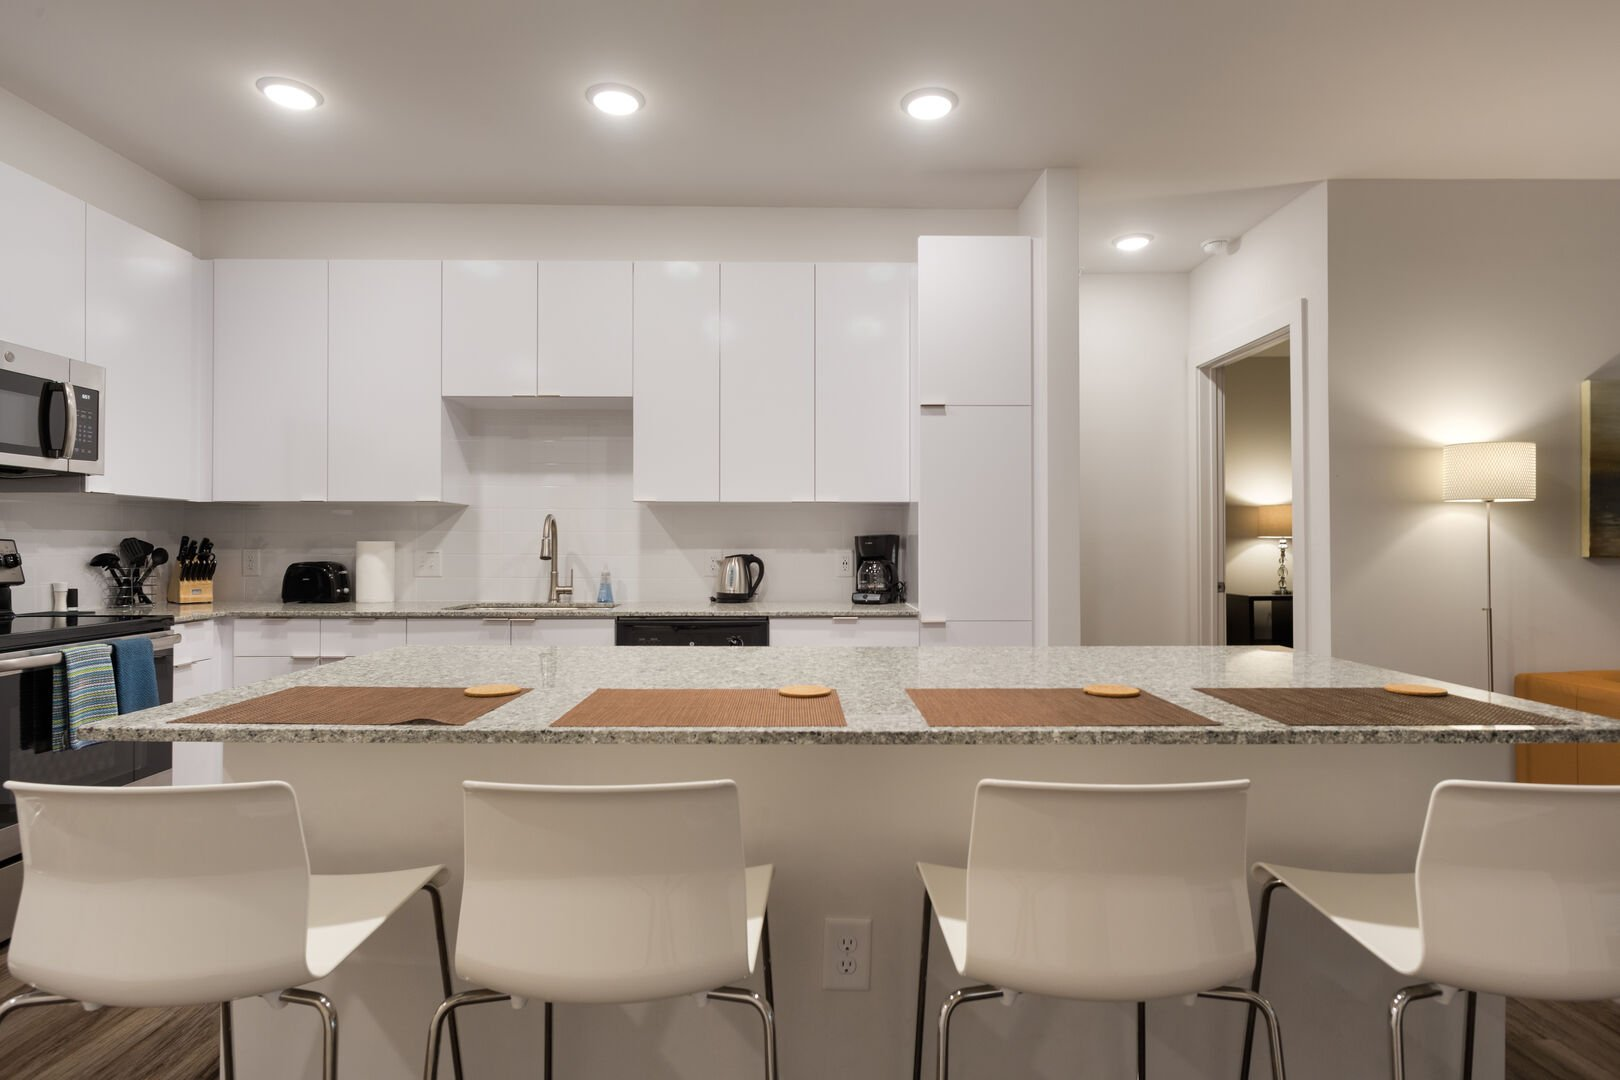 Fully Equipped Kitchen with Island Bar Seating - BCA Furnished Apartments - 2-Bedroom Spectacular Suites